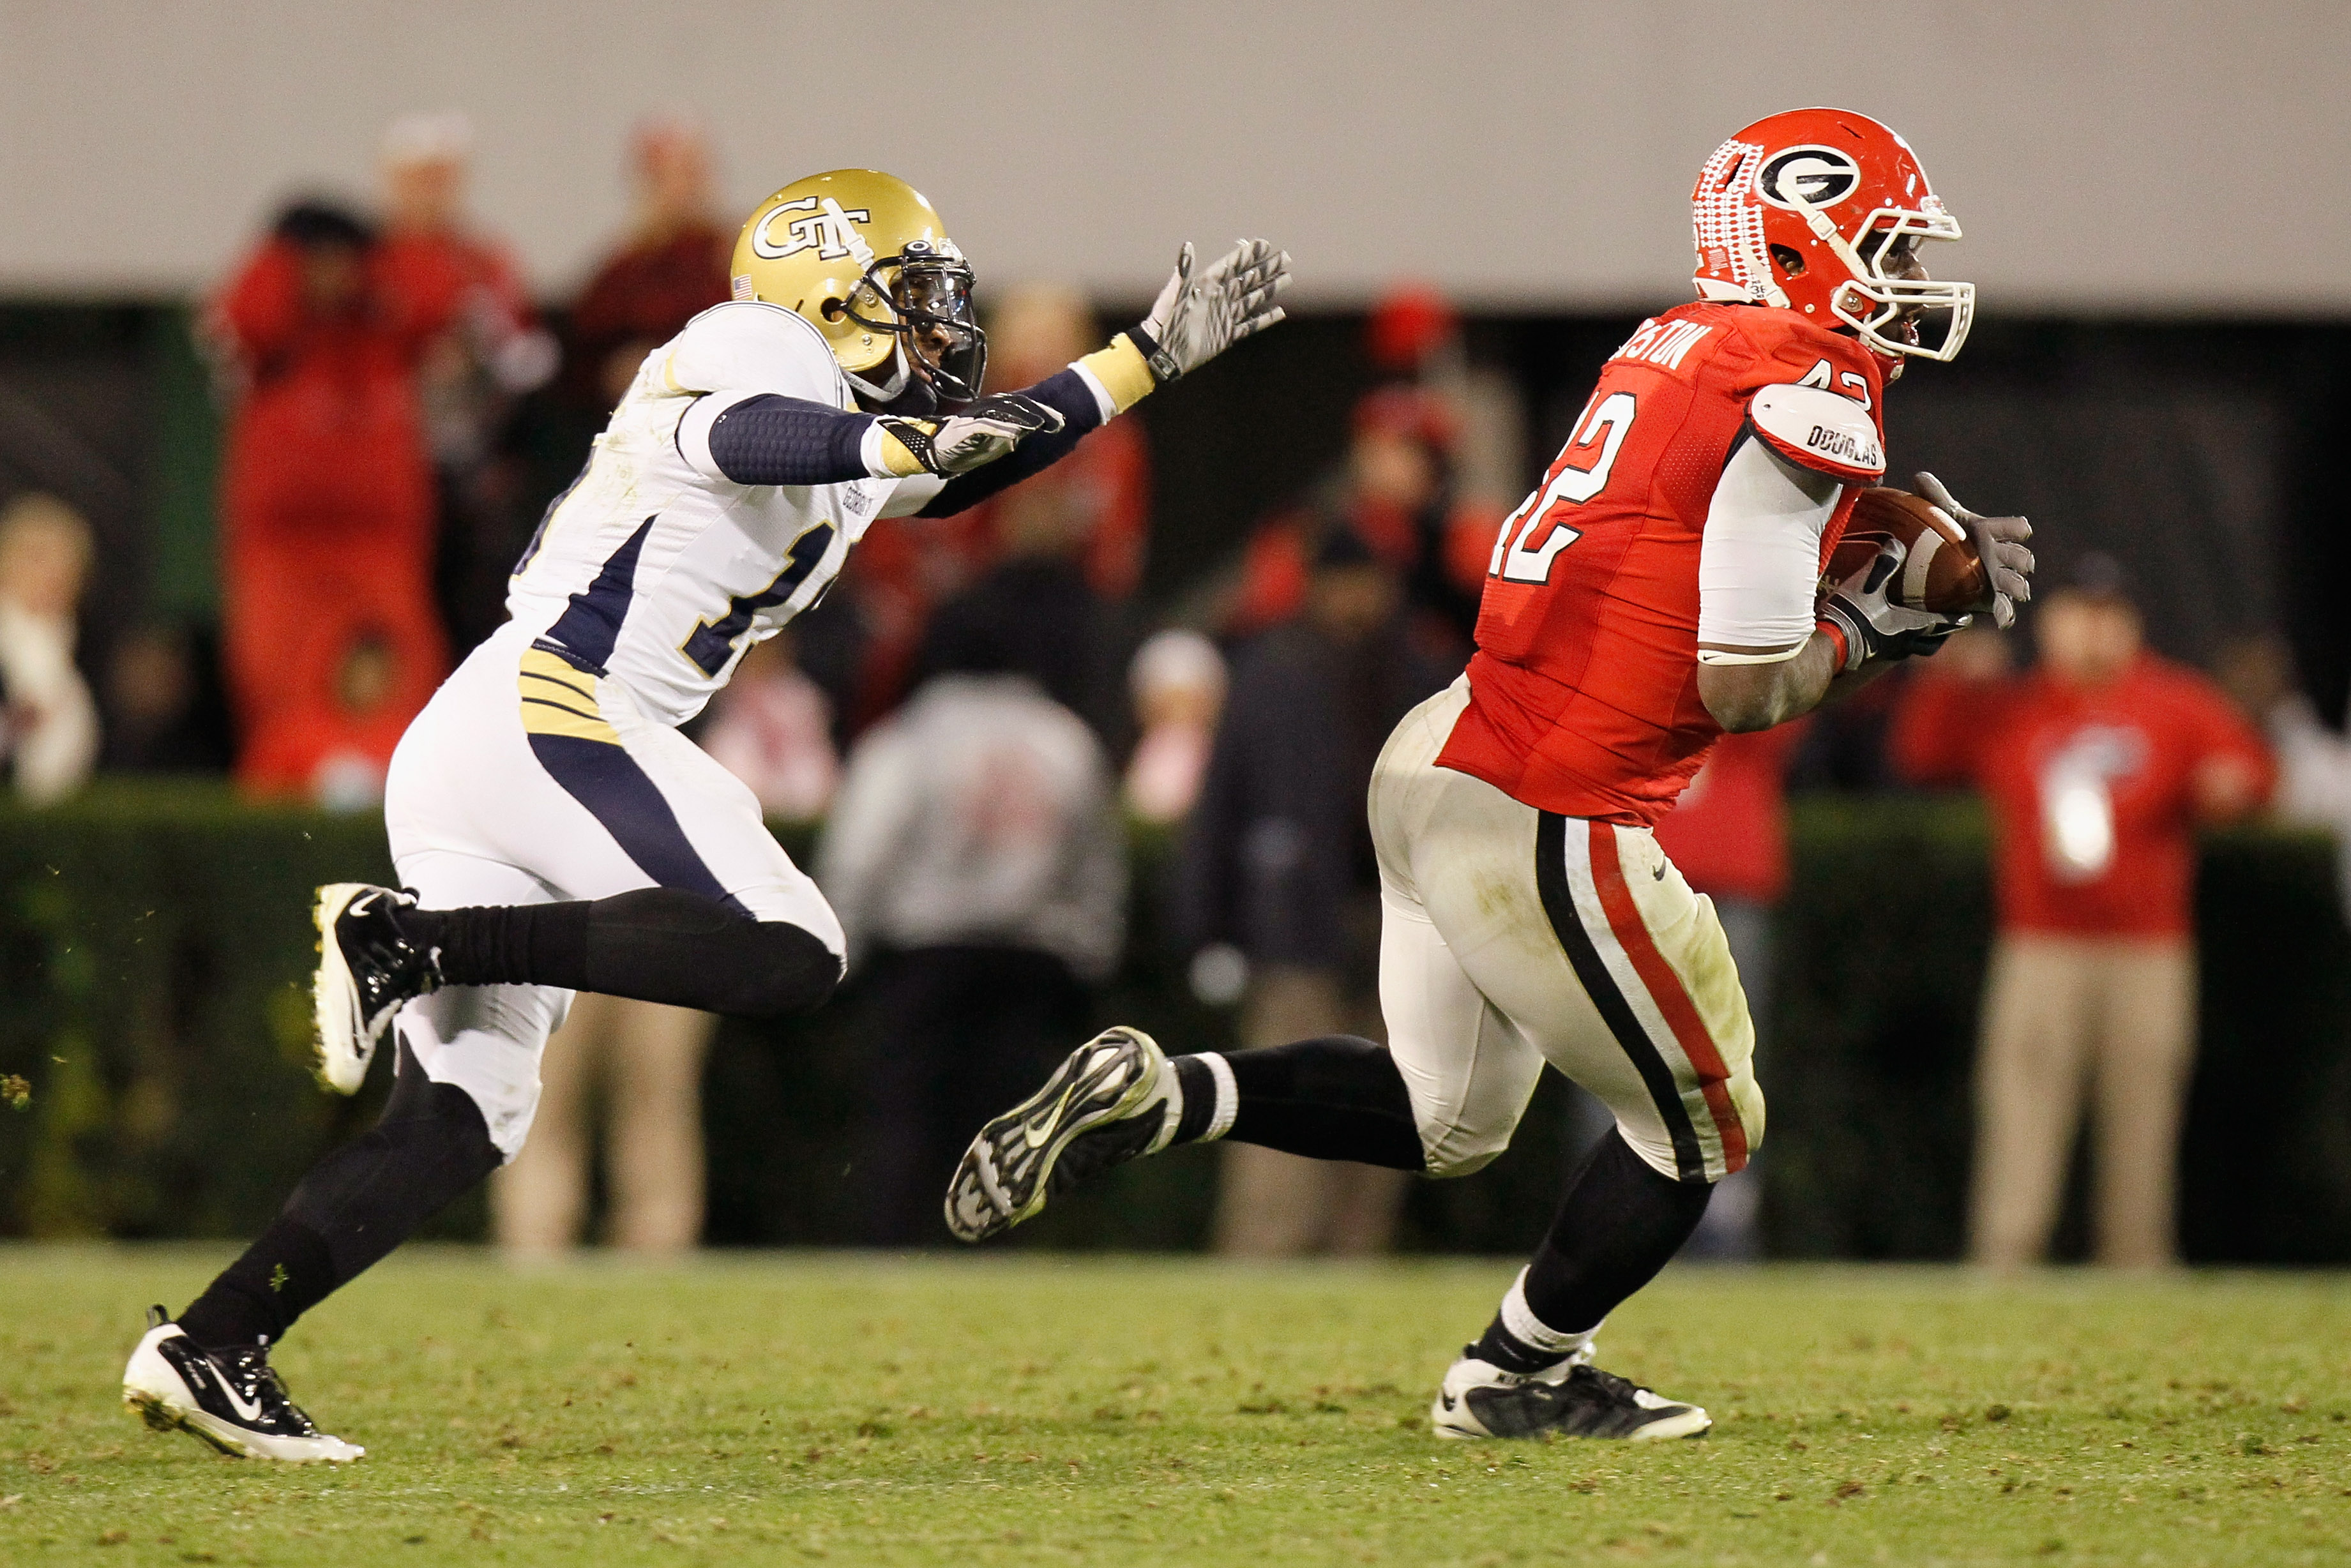 ATHENS, GA - NOVEMBER 27:  Justin Houston #42 of the Georgia Bulldogs intercepts a pass intended for Correy Earls #15 of the Georgia Tech Yellow Jackets in the final seconds of regulation at Sanford Stadium on November 27, 2010 in Athens, Georgia.  (Photo